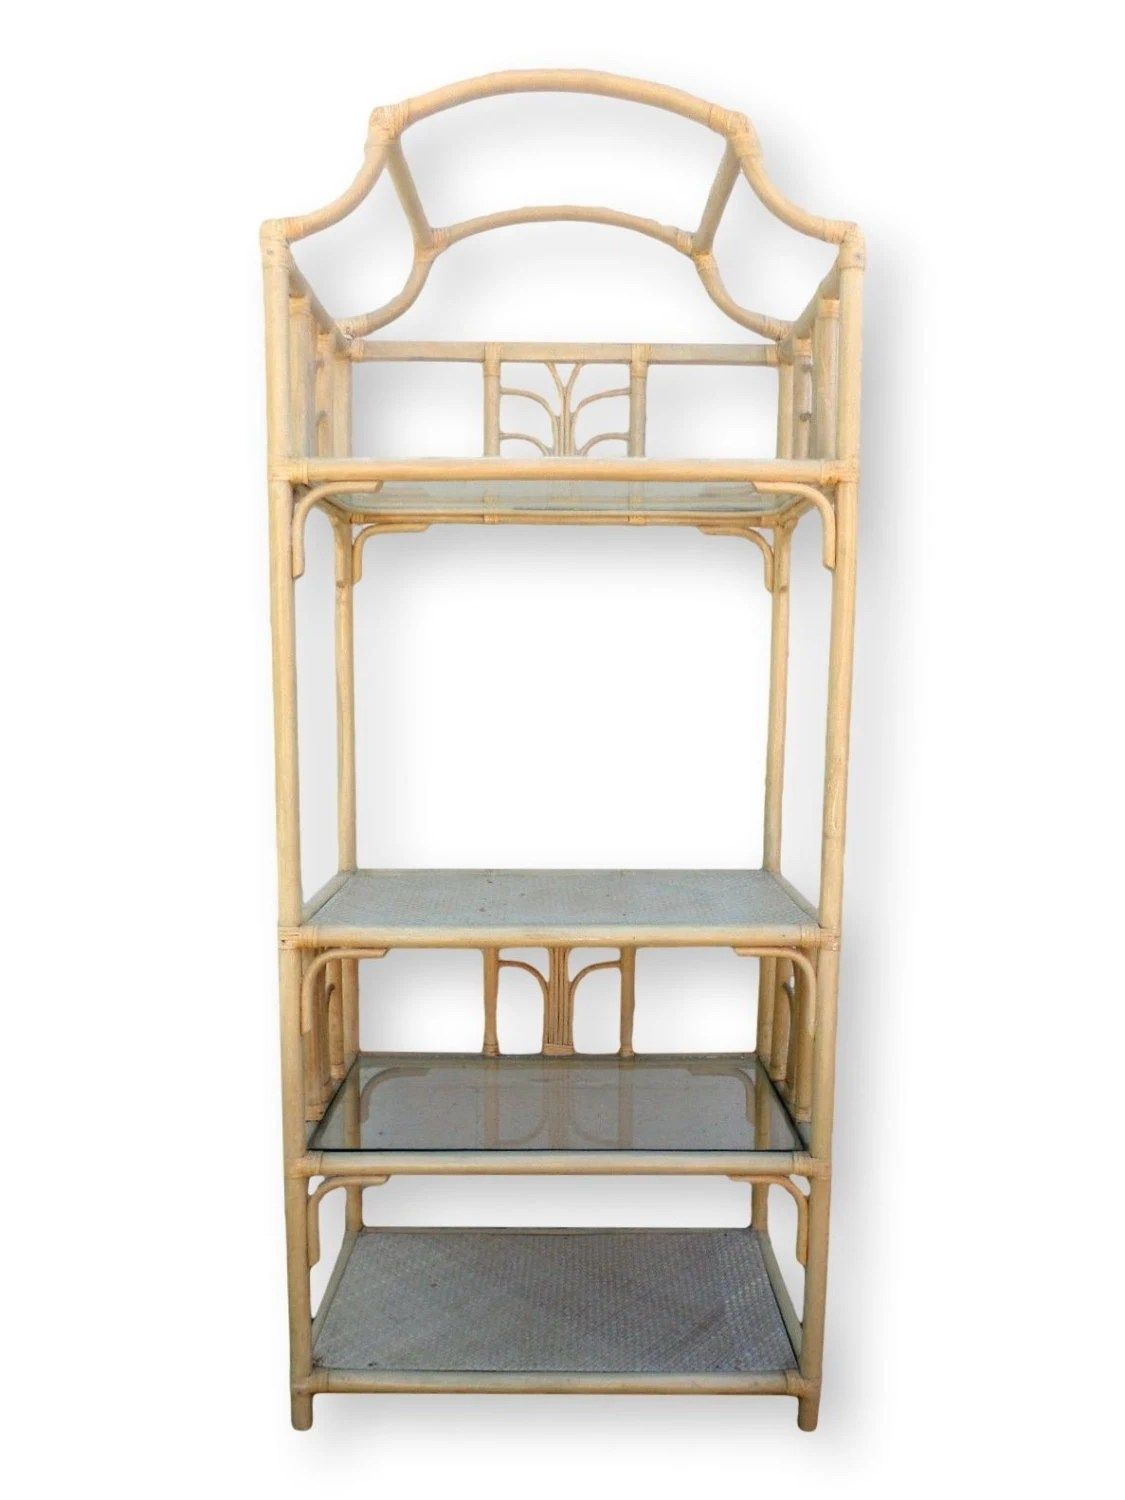 wicker etagere 28 images vintage wicker arched etagere chairish wakefield rattan company. Black Bedroom Furniture Sets. Home Design Ideas